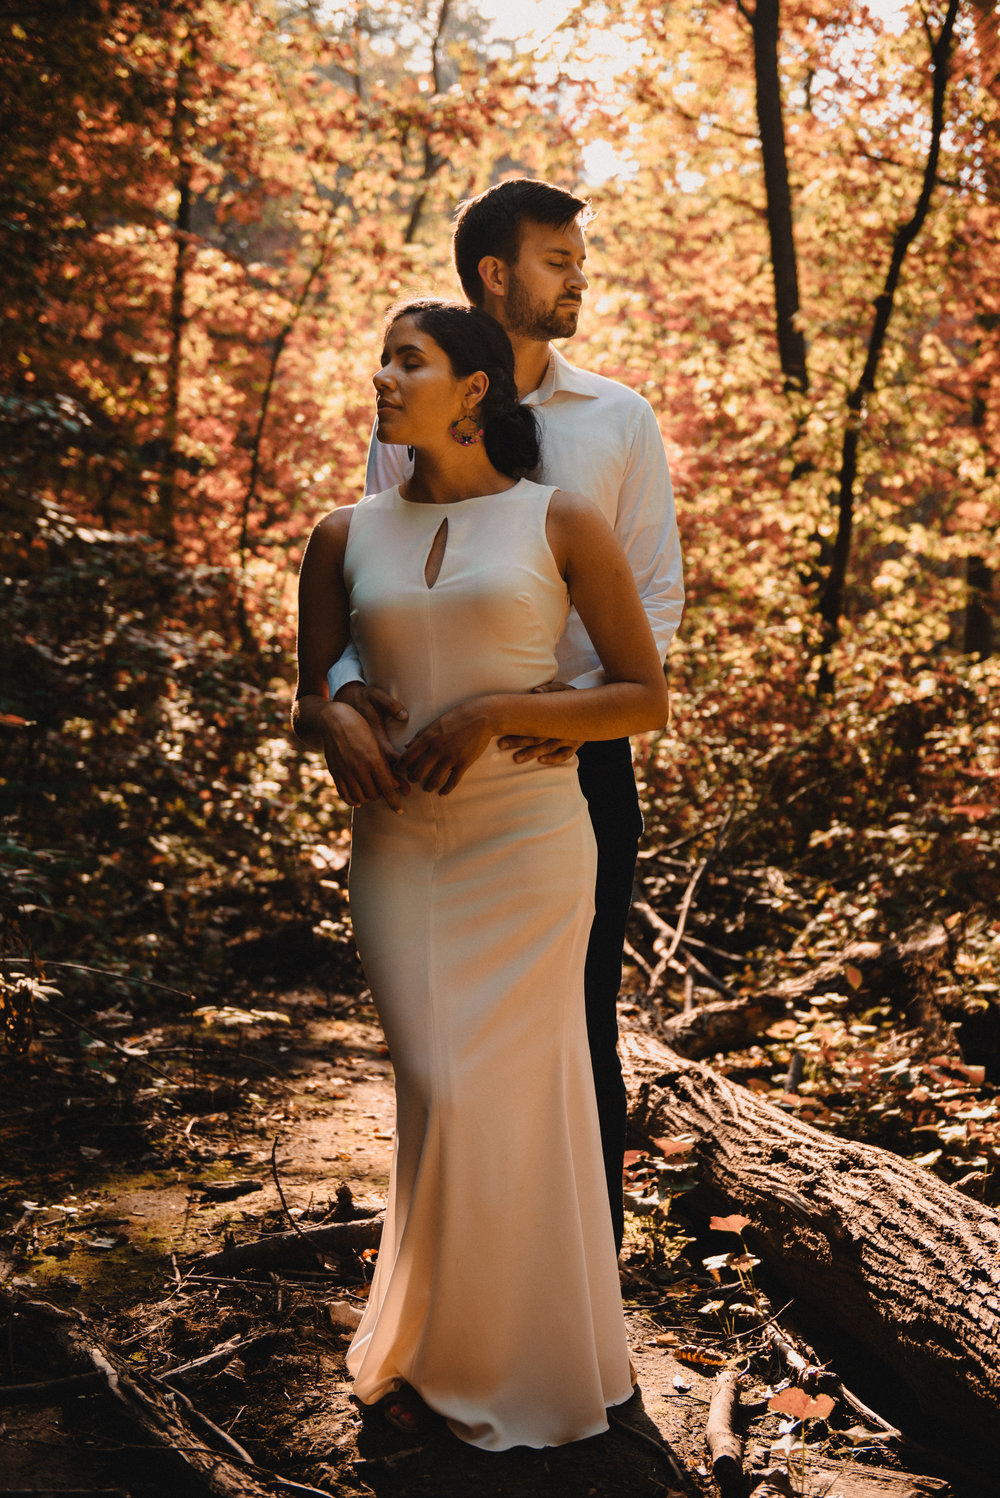 Mocha Tree Studios Ottawa Wedding and Engagement Photographer and Videographer Dark Moody Intimate Authentic Modern Romantic Cinematic Best Candid Princess Louise Falls 9